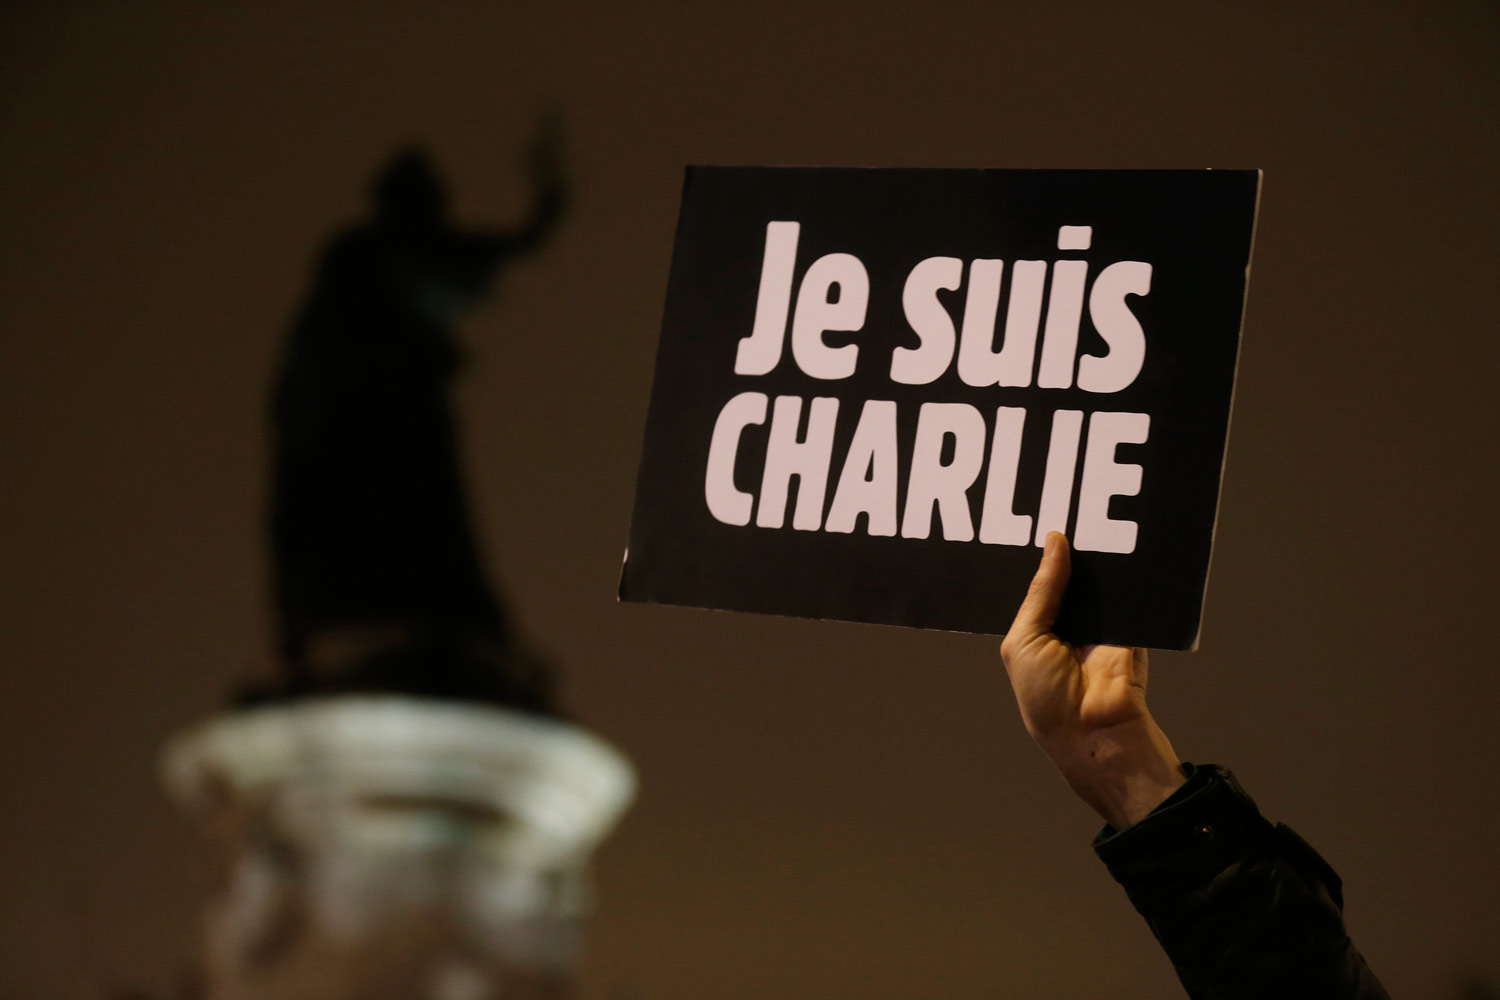 Nous-Sommes-Tous-Charlie-Defend-Freedom-of-Expression-in-France-and-Around-the-World